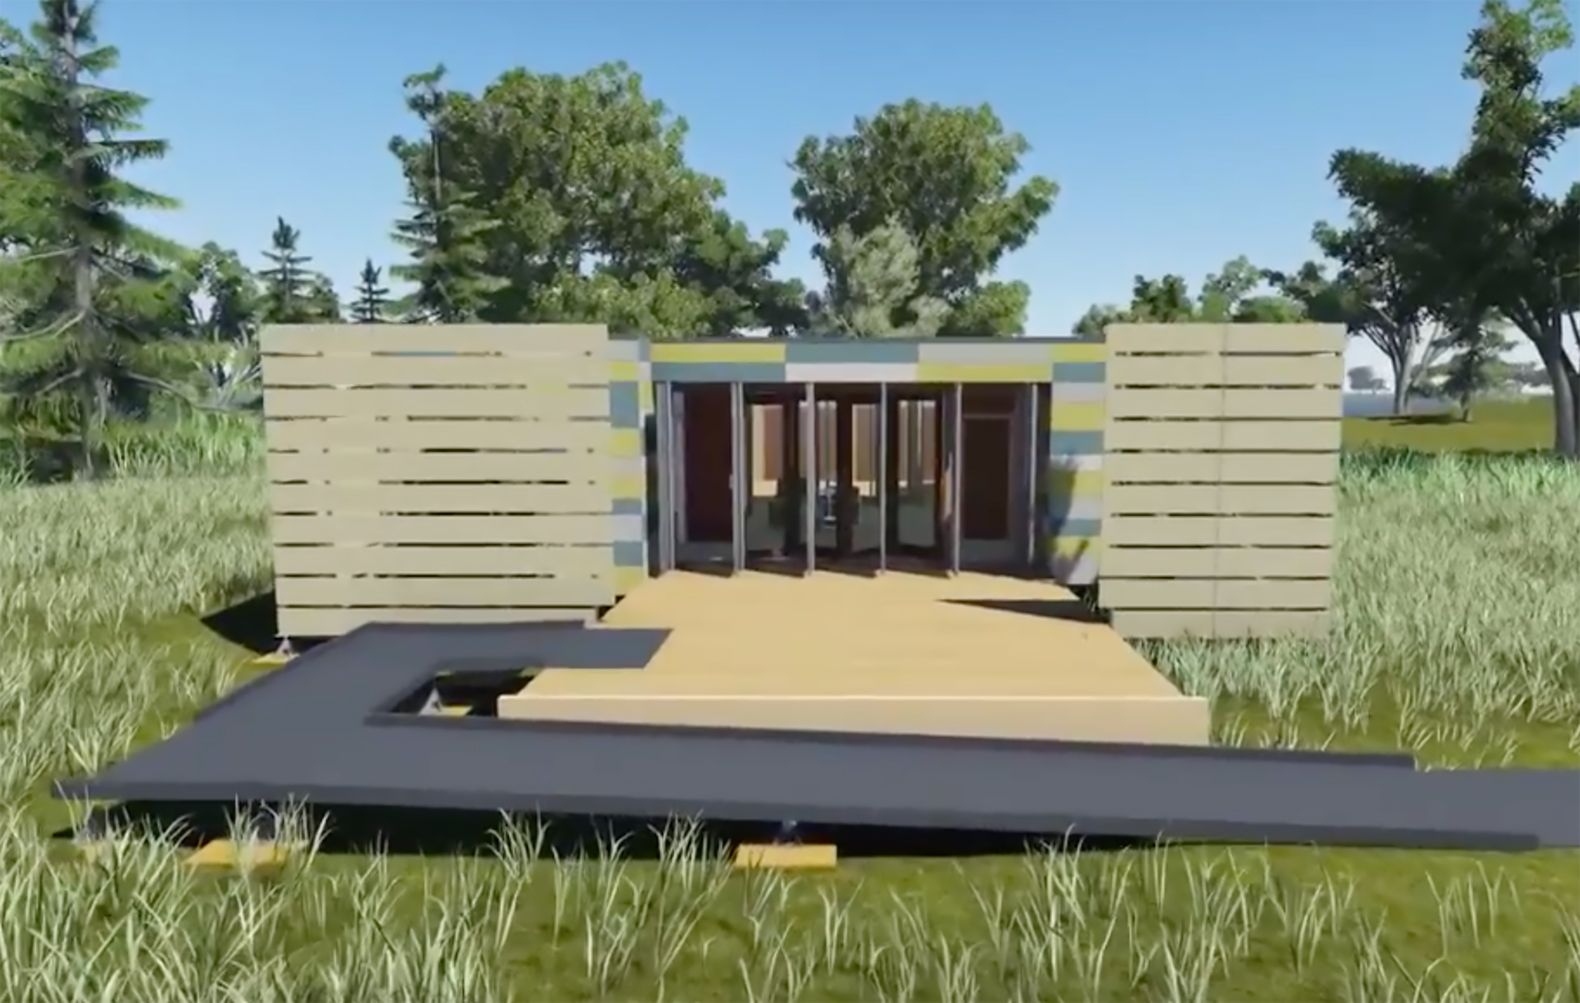 Building off grid homes - Solar Powered Shelter3 Is An Off The Grid Home Built To Withstand Tornadoes